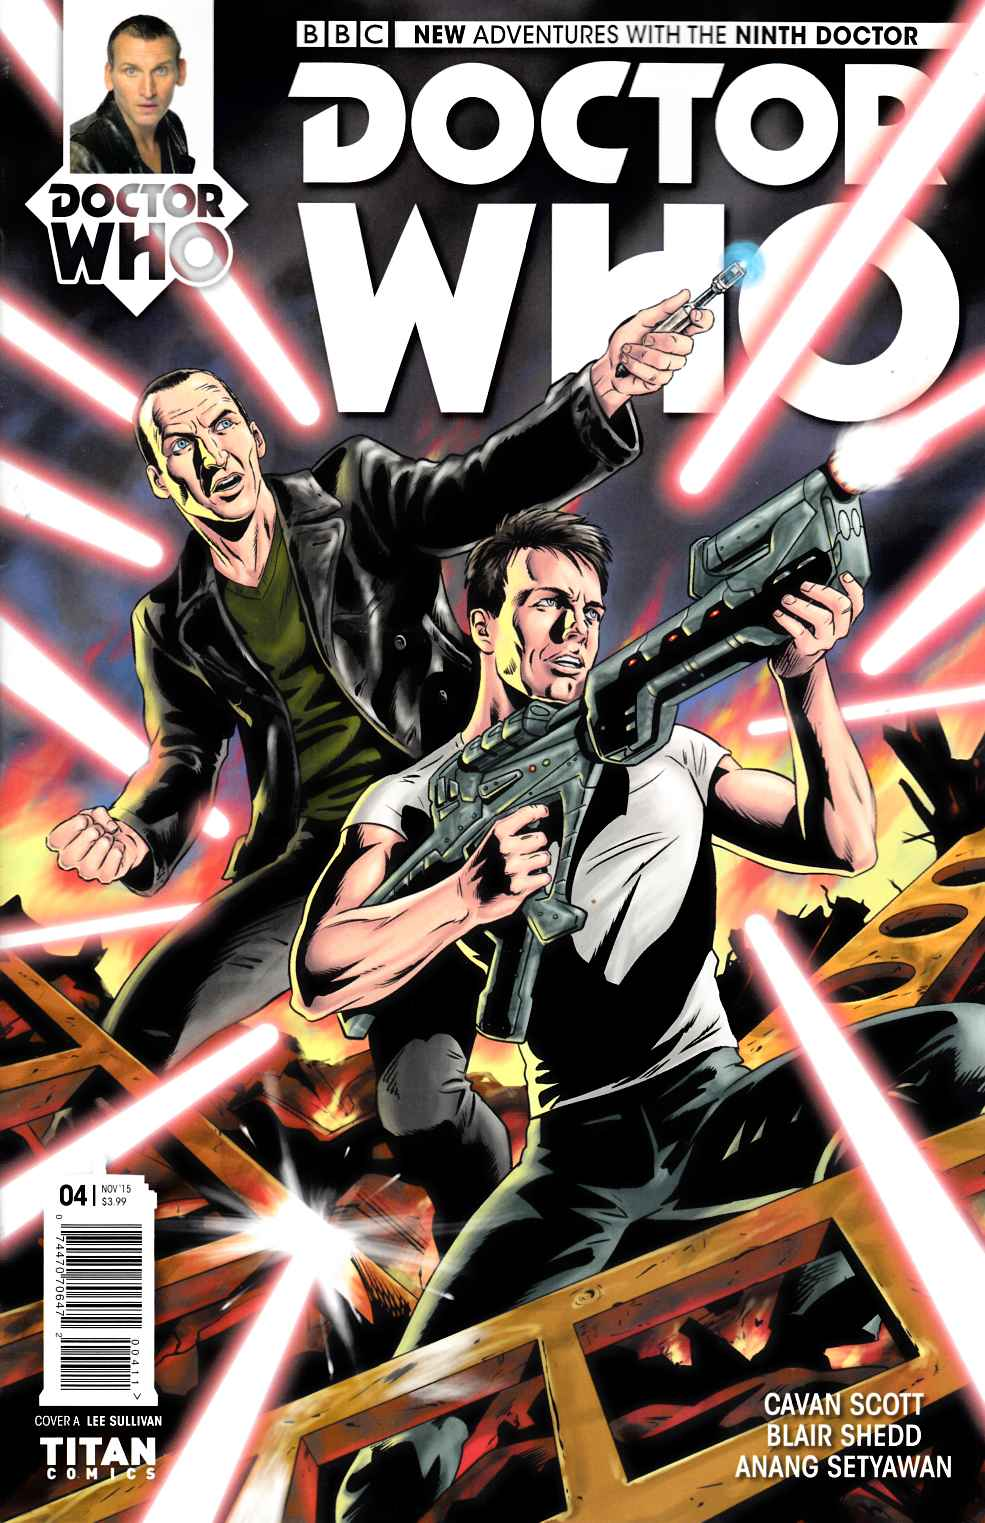 Doctor Who 9th Doctor #4 [Titan Comic] THUMBNAIL